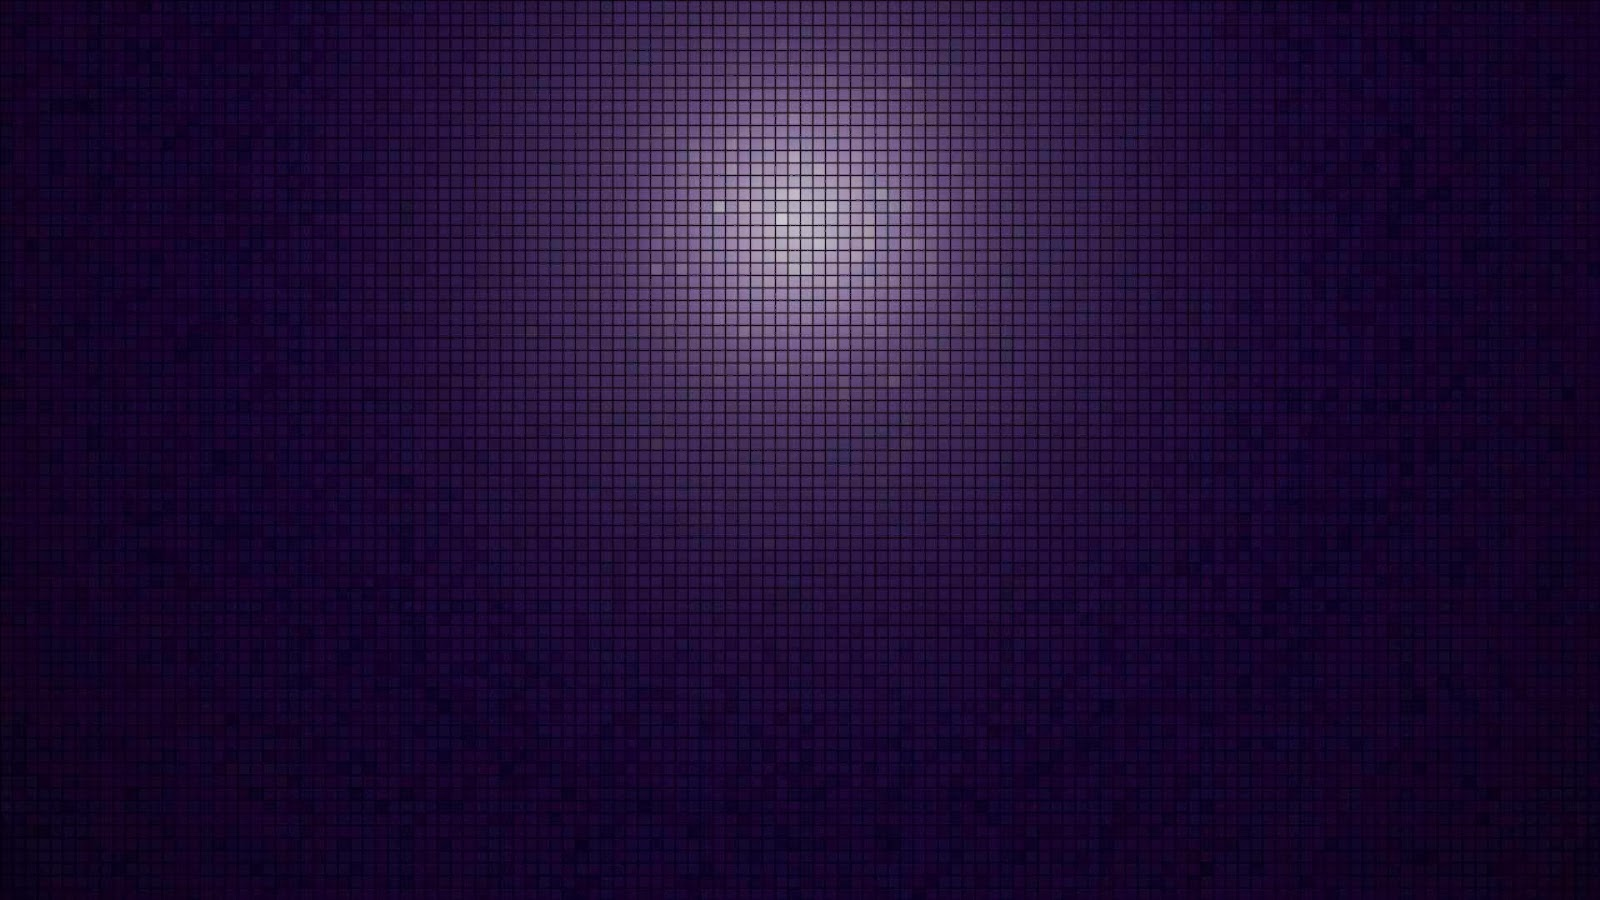 Bedroom Colors For Girls The Gallery For Gt Fondo Morado Oscuro